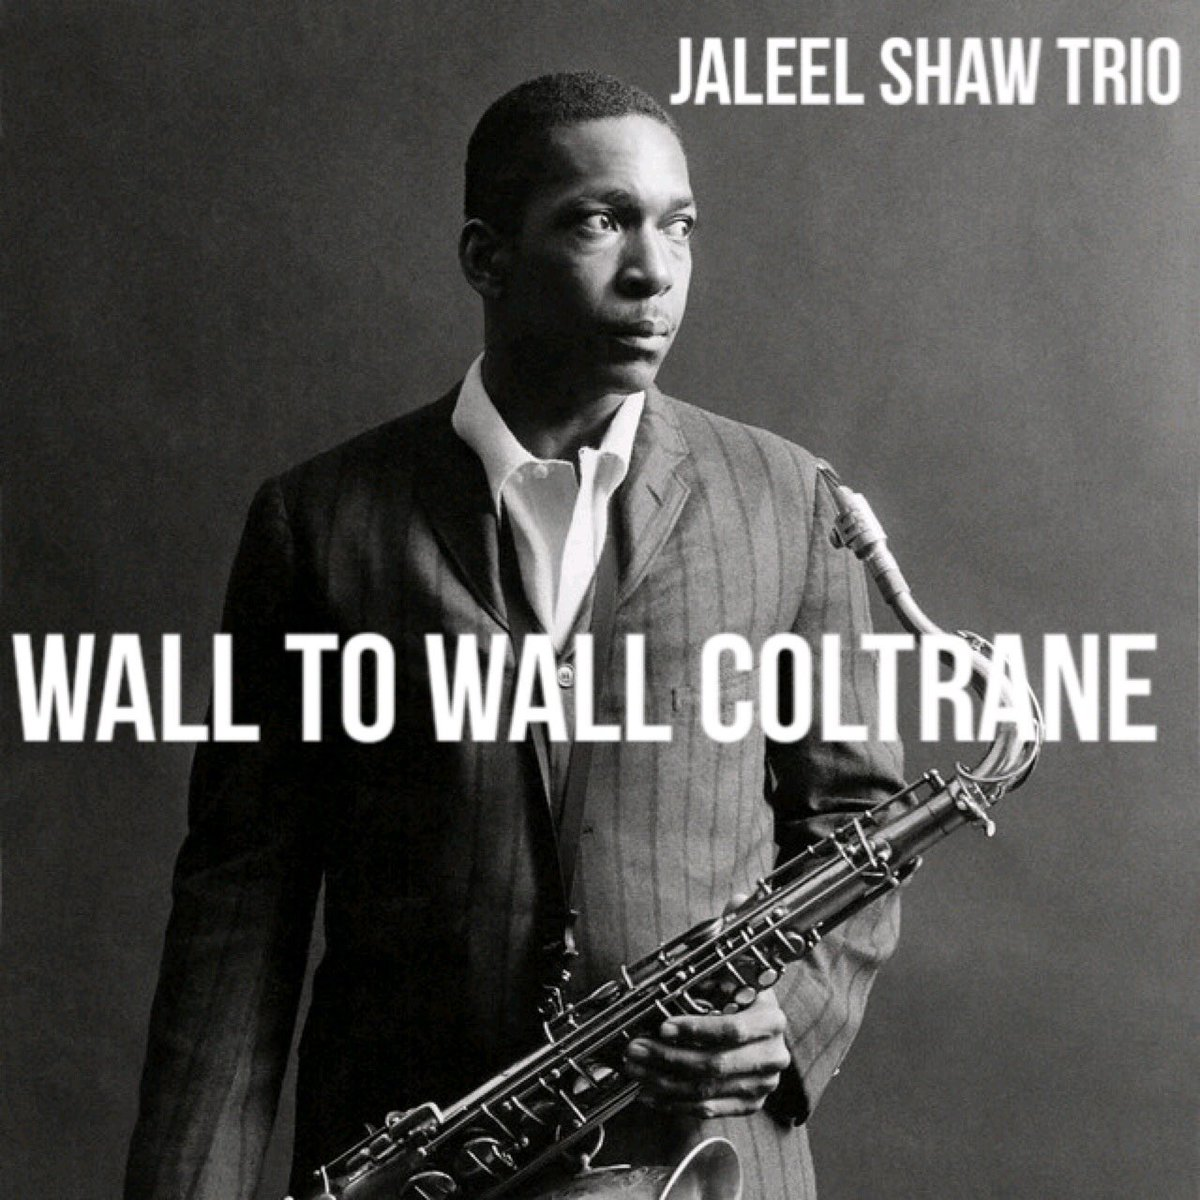 Looking forward to performing at the Wall to Wall Coltrane festival at @SymphonySpace in NYC this Sunday, June 9th w/ bassist Dezron Douglas & drummer @JohnathanBlake1. We go on after 8:30pm & admission is FREE #thingstodoinNYC <br>http://pic.twitter.com/JE38wlcg01